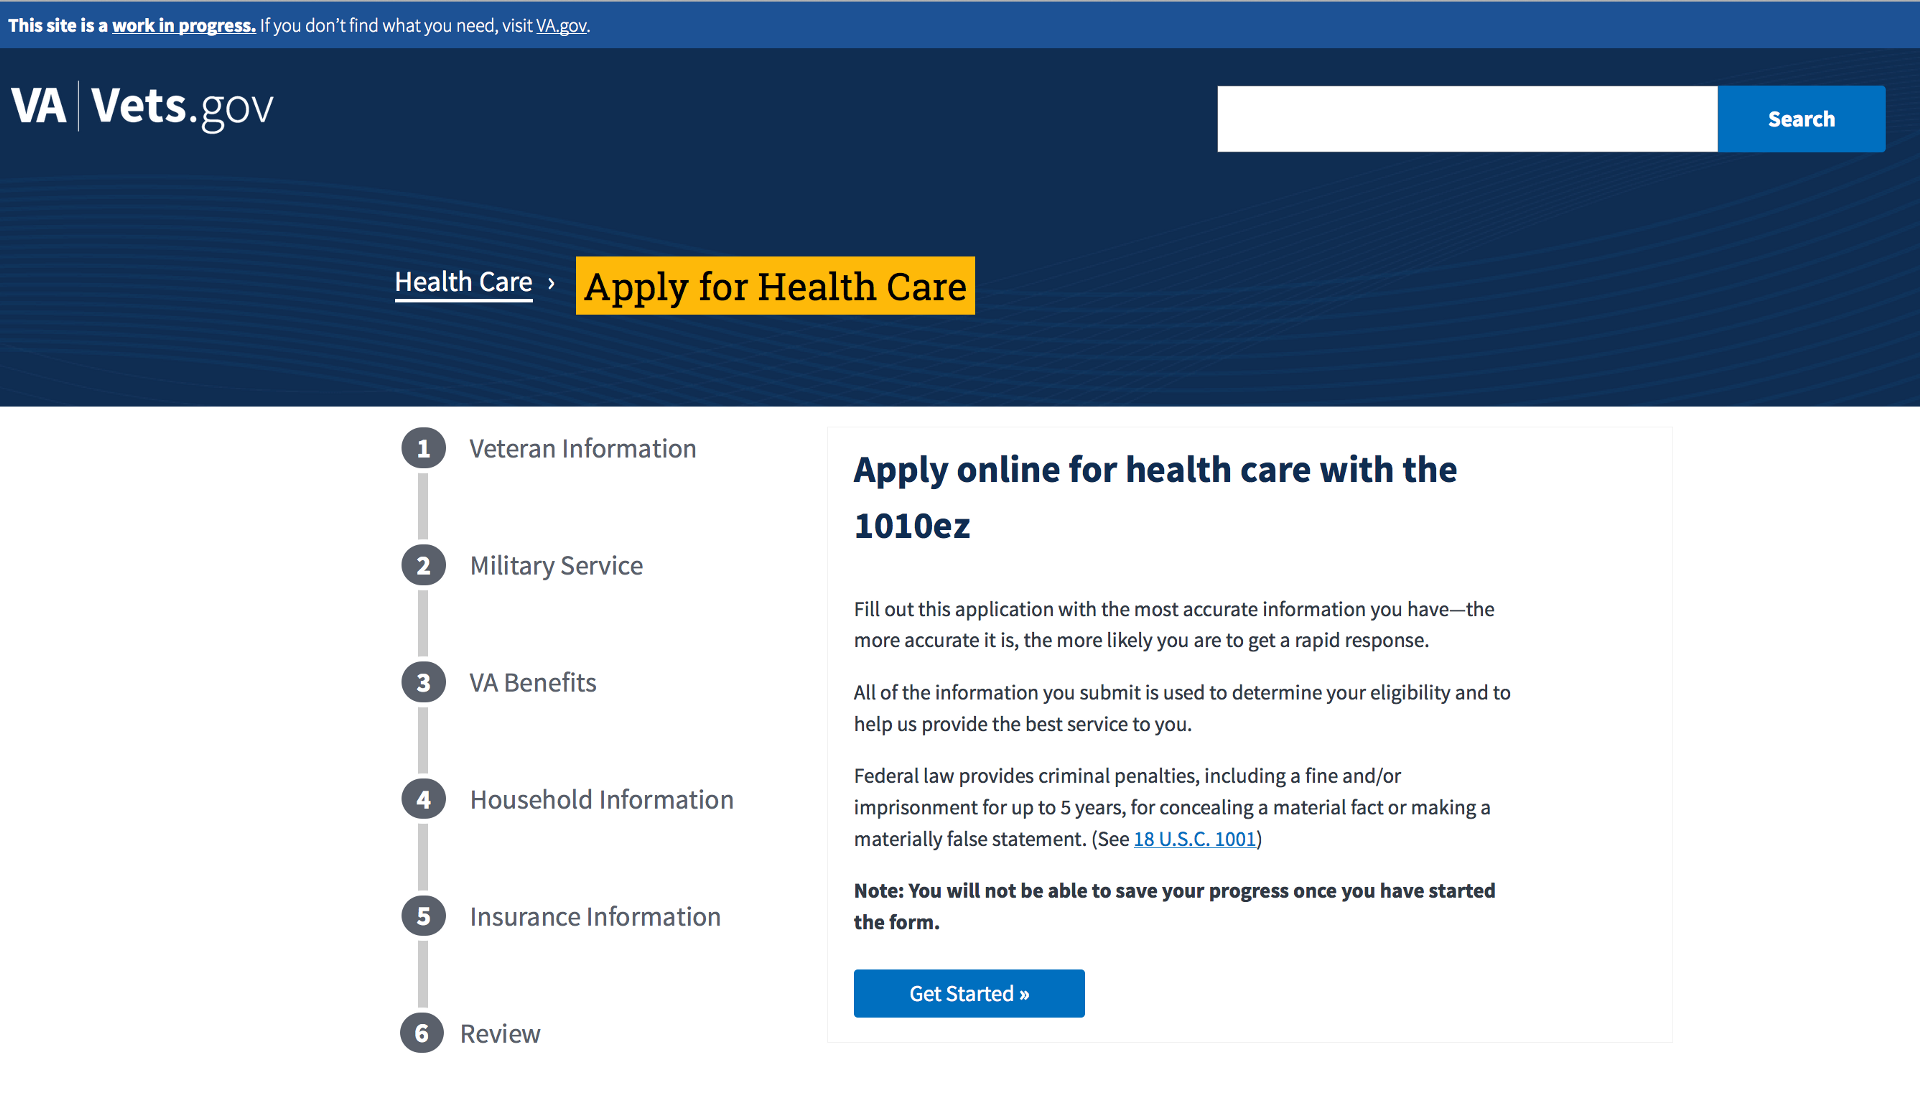 Introducing a new digital application for health care at VA